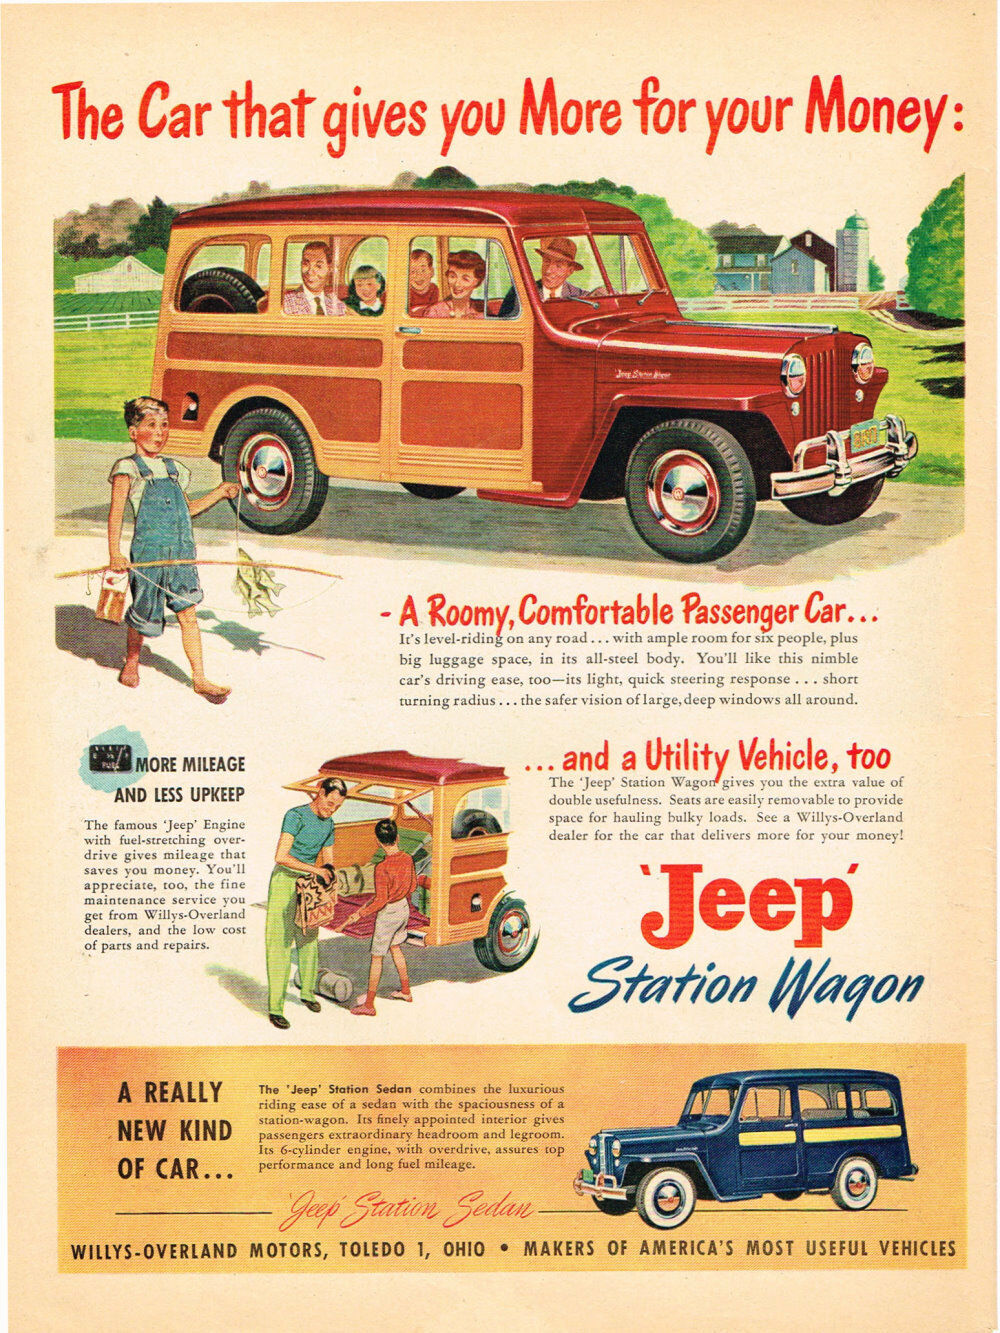 Jeep Woody Station Wagon Utility Vehcle 1949 Paper Ad 10 X 14 1941 Willys 1 Of 1only Available